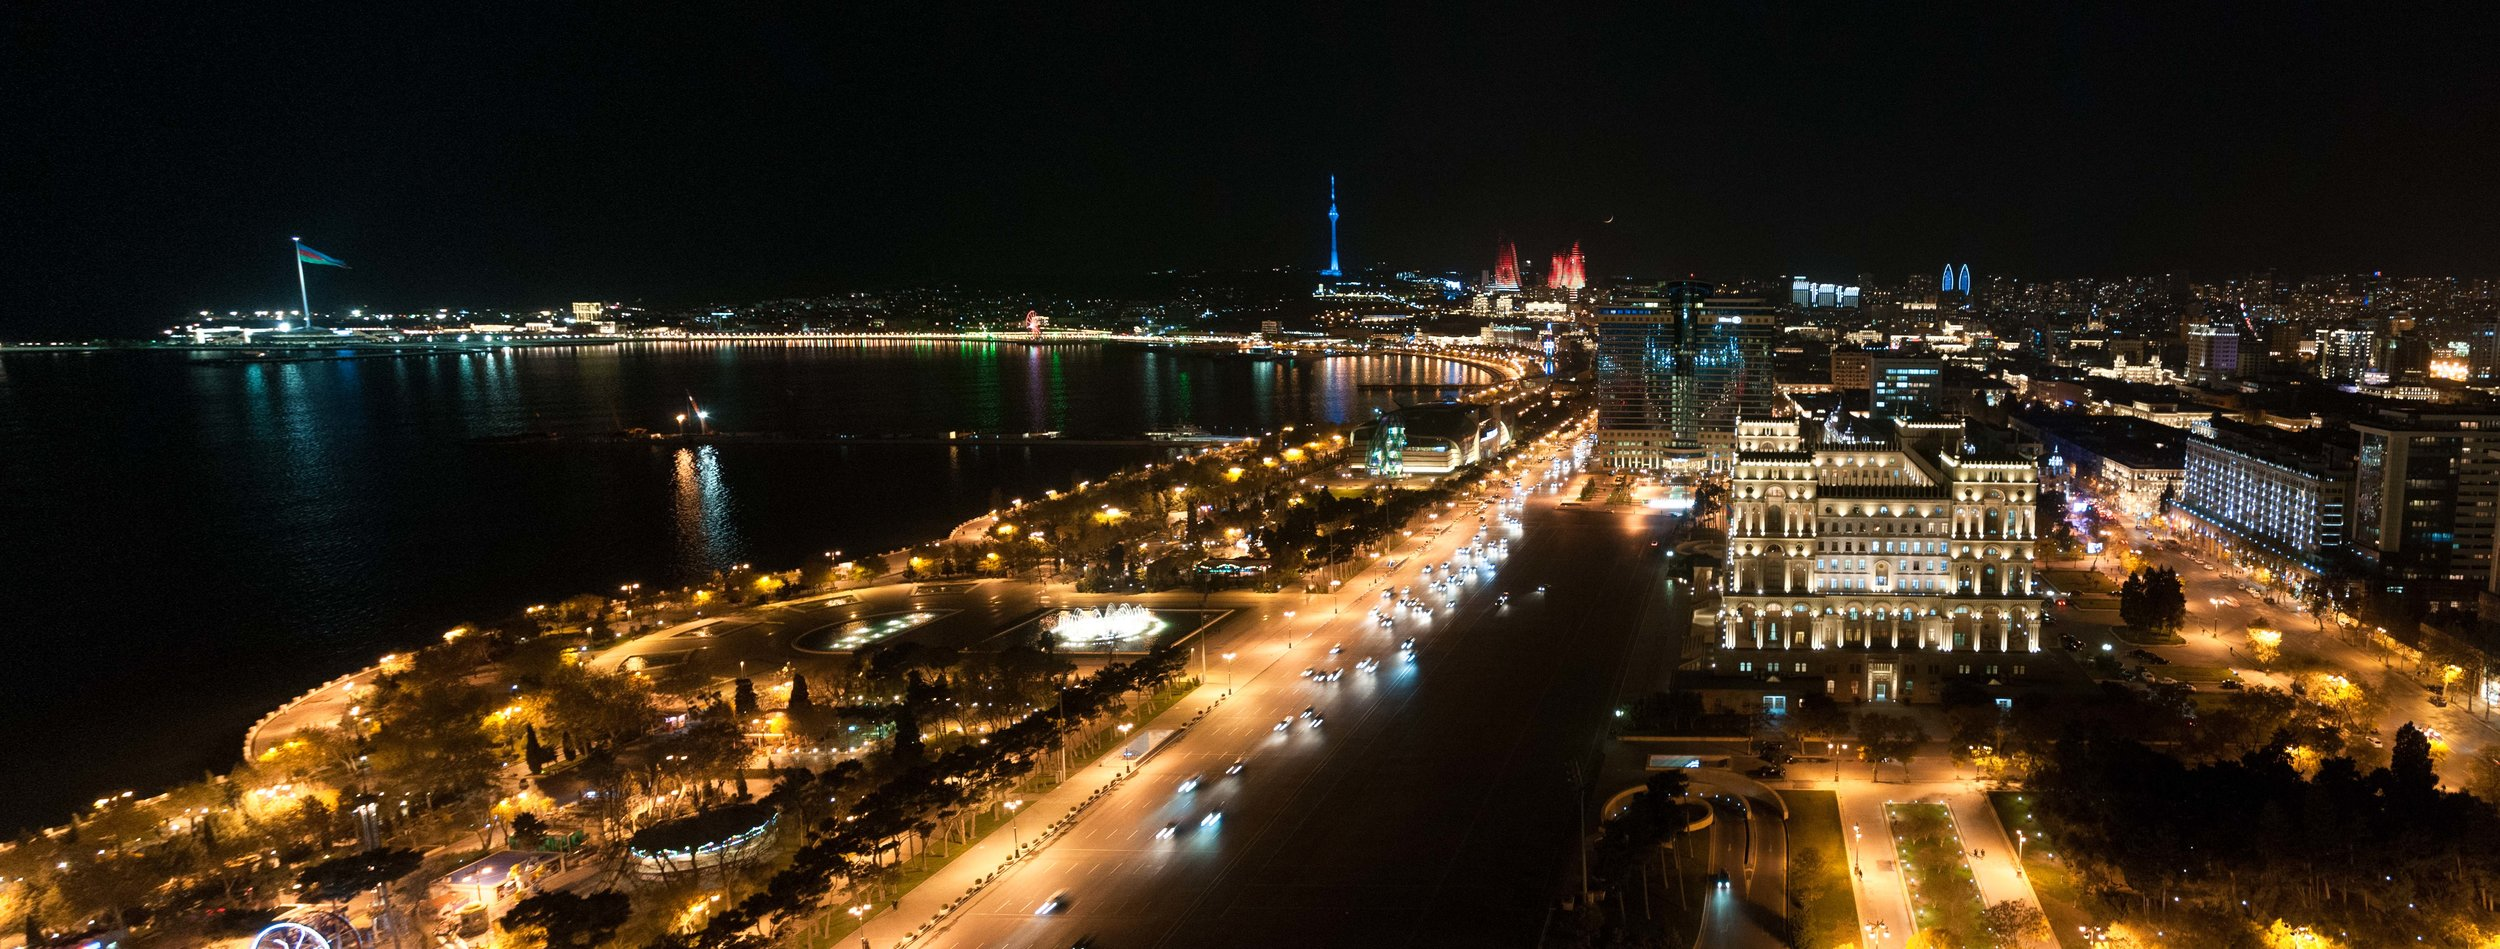 View from the Marriott Baku hotel. This was pretty much the view from my room!